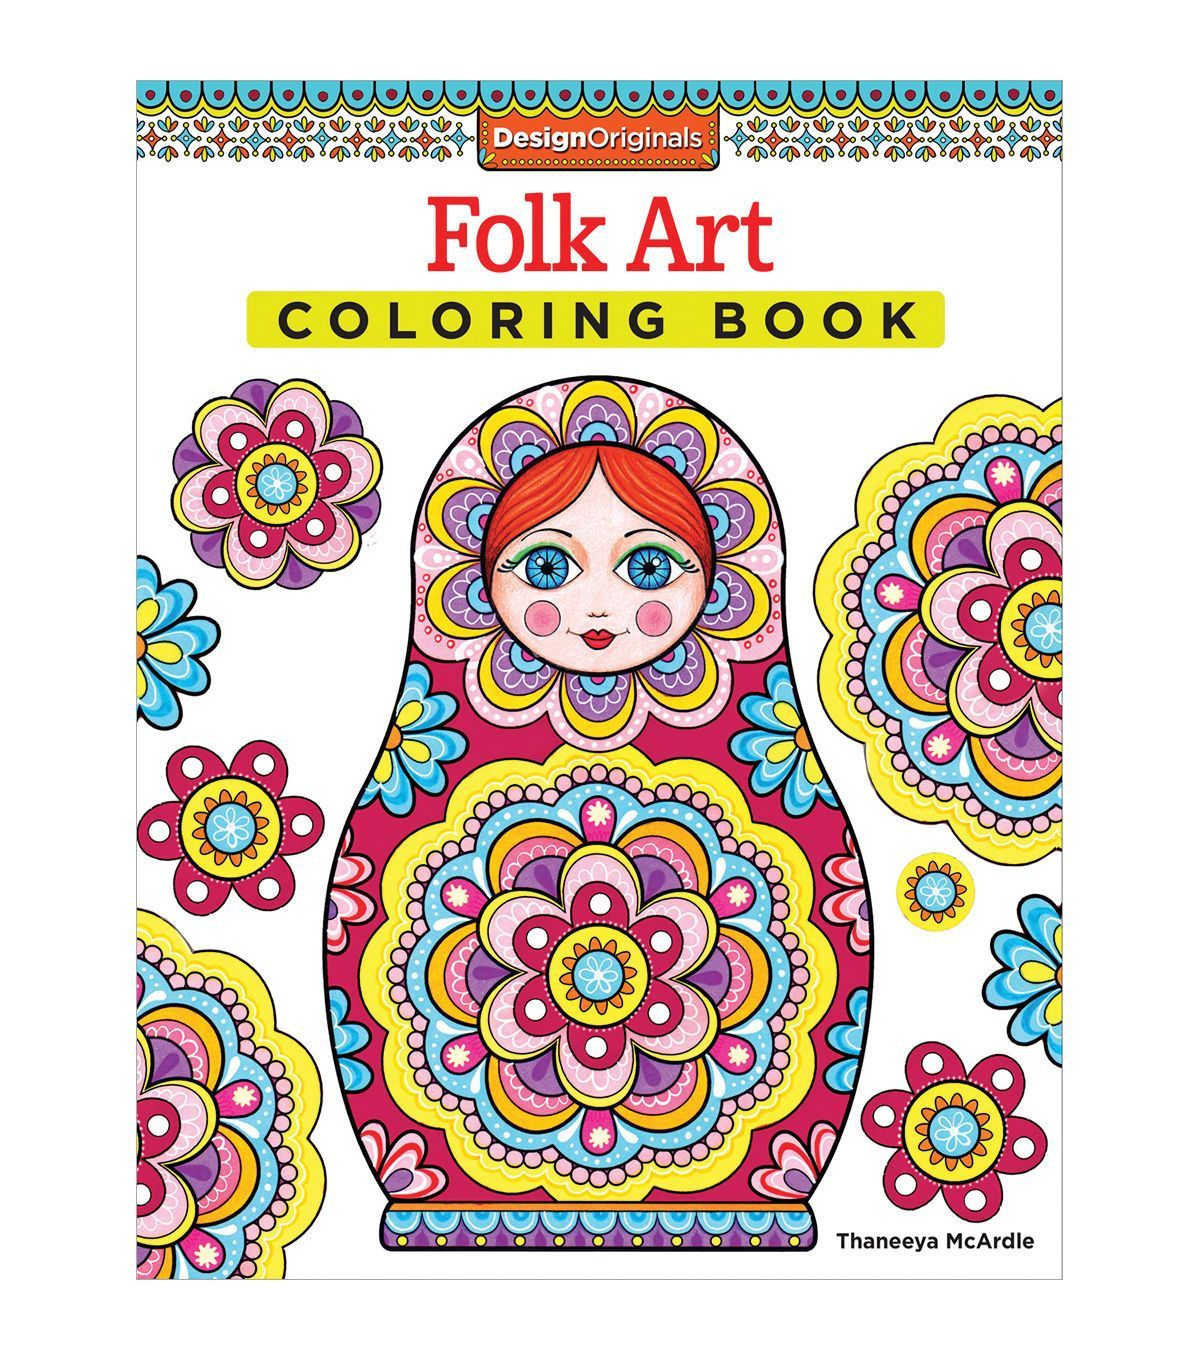 Libros De Fantasia Para Adultos Adult Coloring Book Design Originals Folk Art Diy